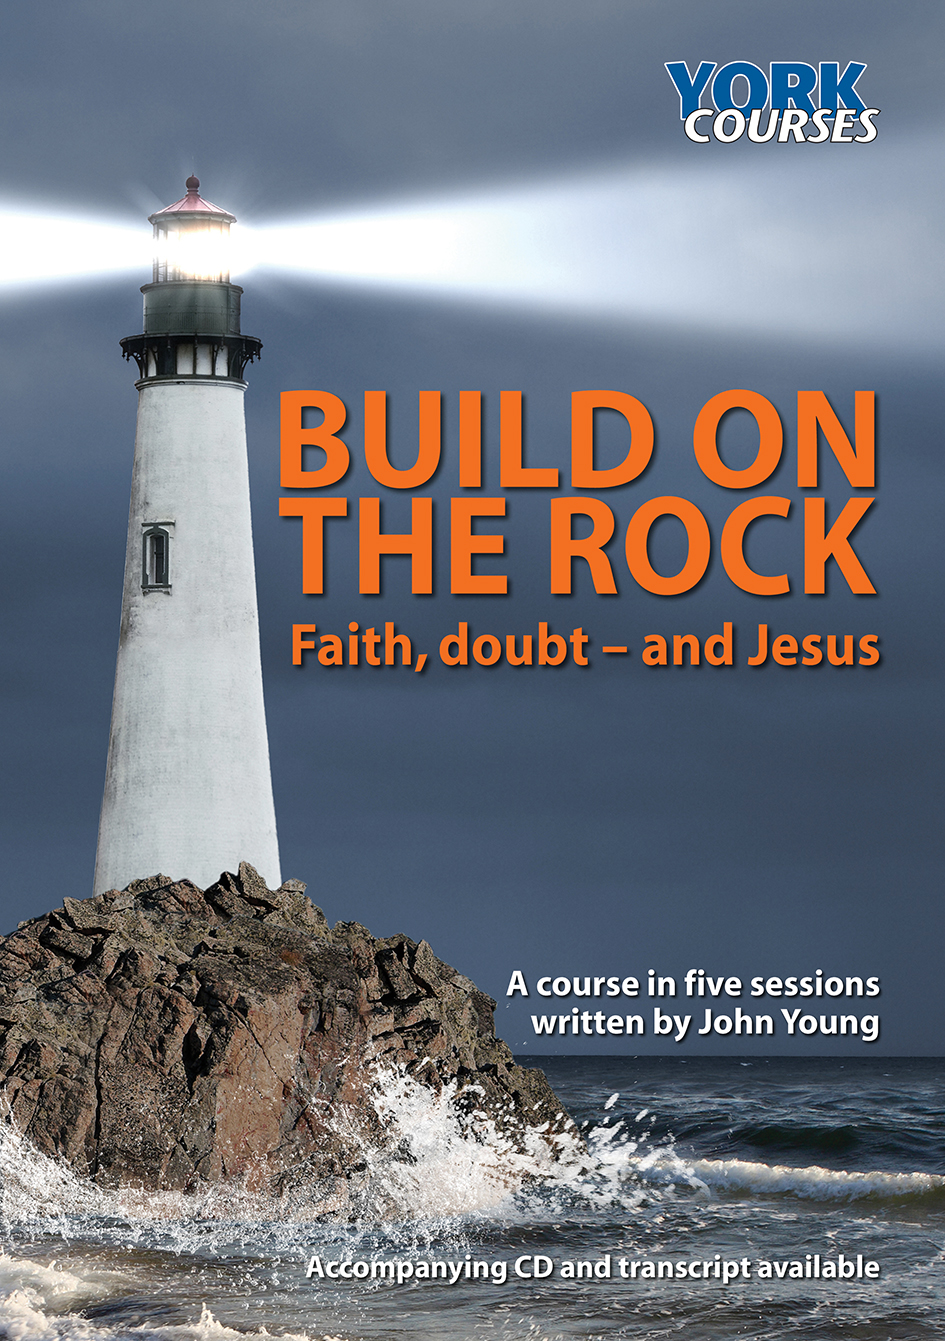 Build on the Rock (York Course 2014)